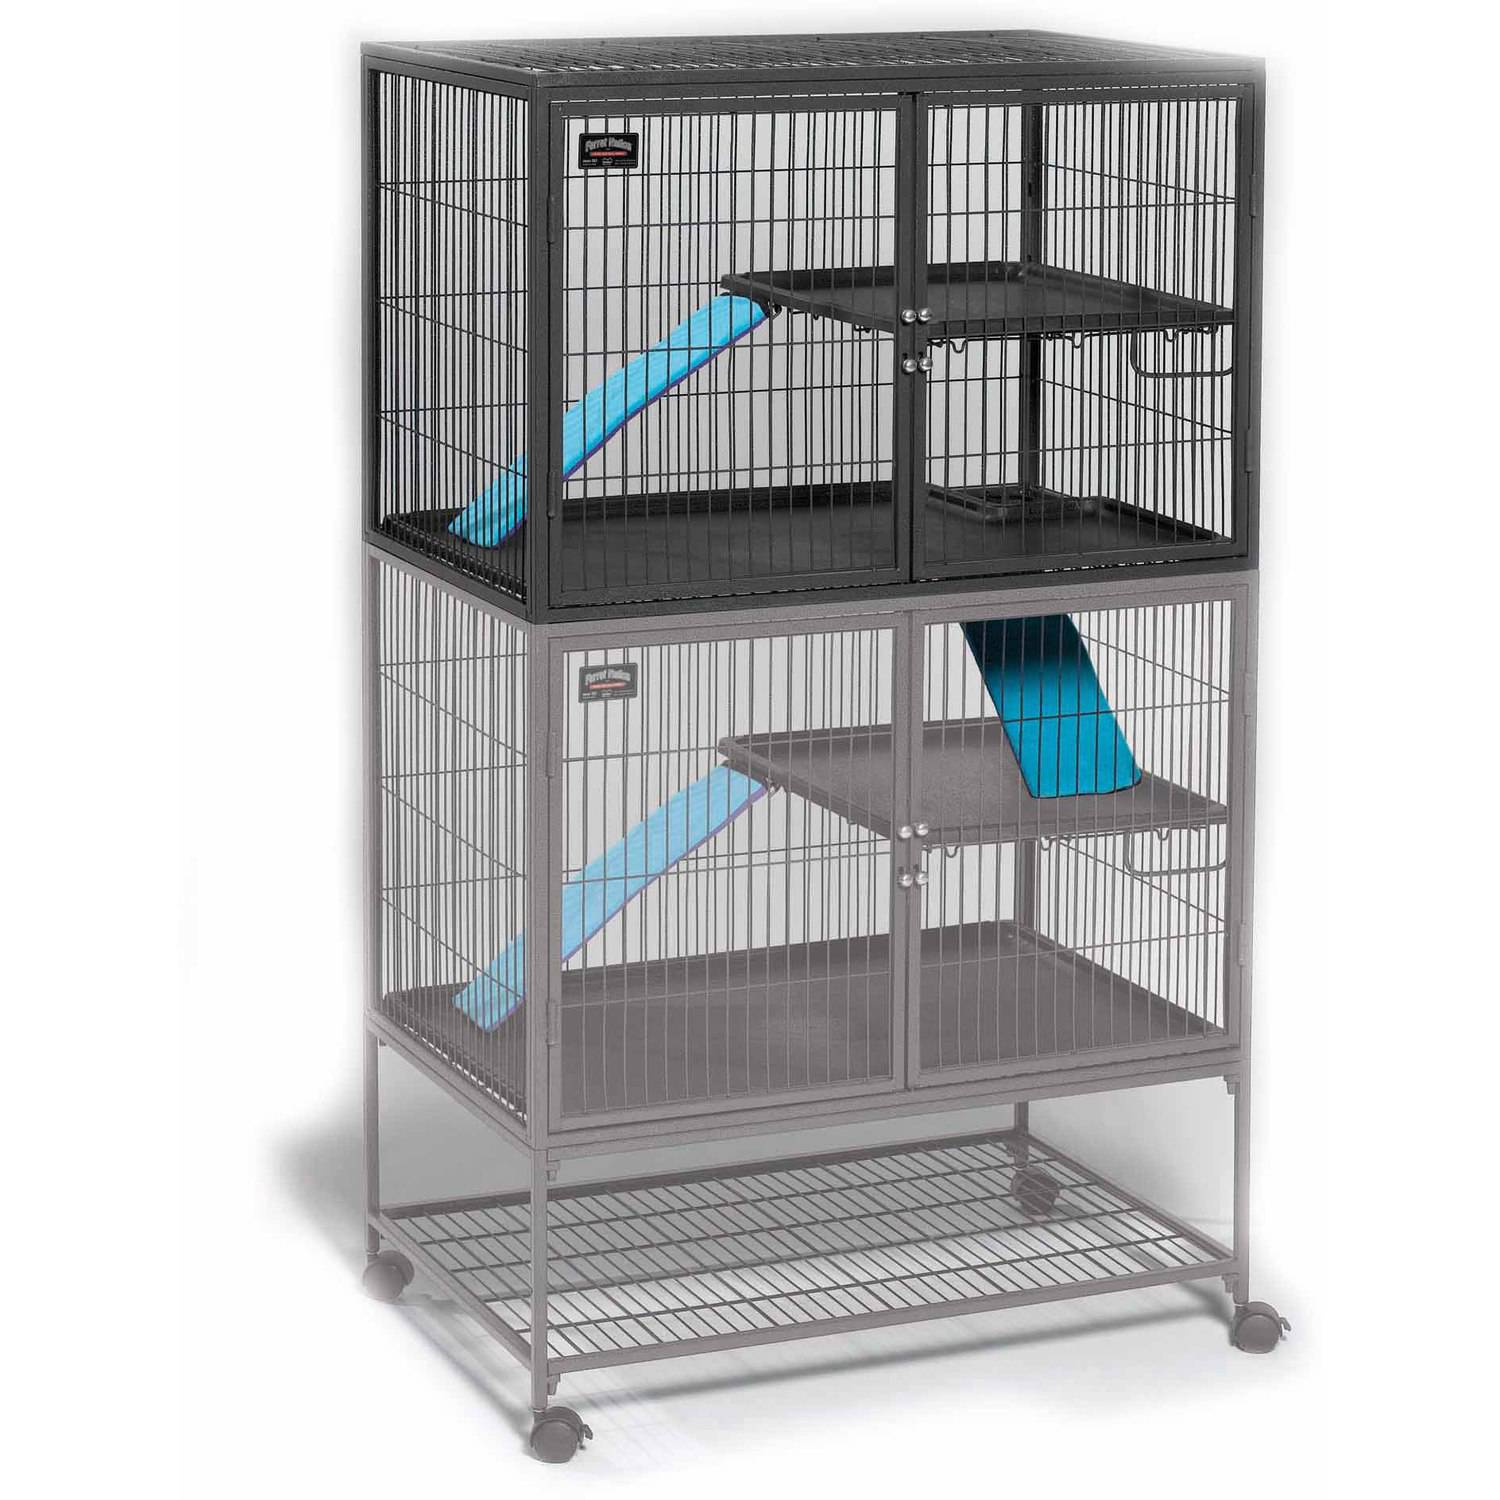 MidWest Deluxe Ferret Nation Add-On Unit Ferret Cage (Model 183) Includes 1 leak-Proof Pans, 1 Shelf, 1 Ramps w/ Ramp Cover. Compatible w/ Ferret Nation Models 181 & 182